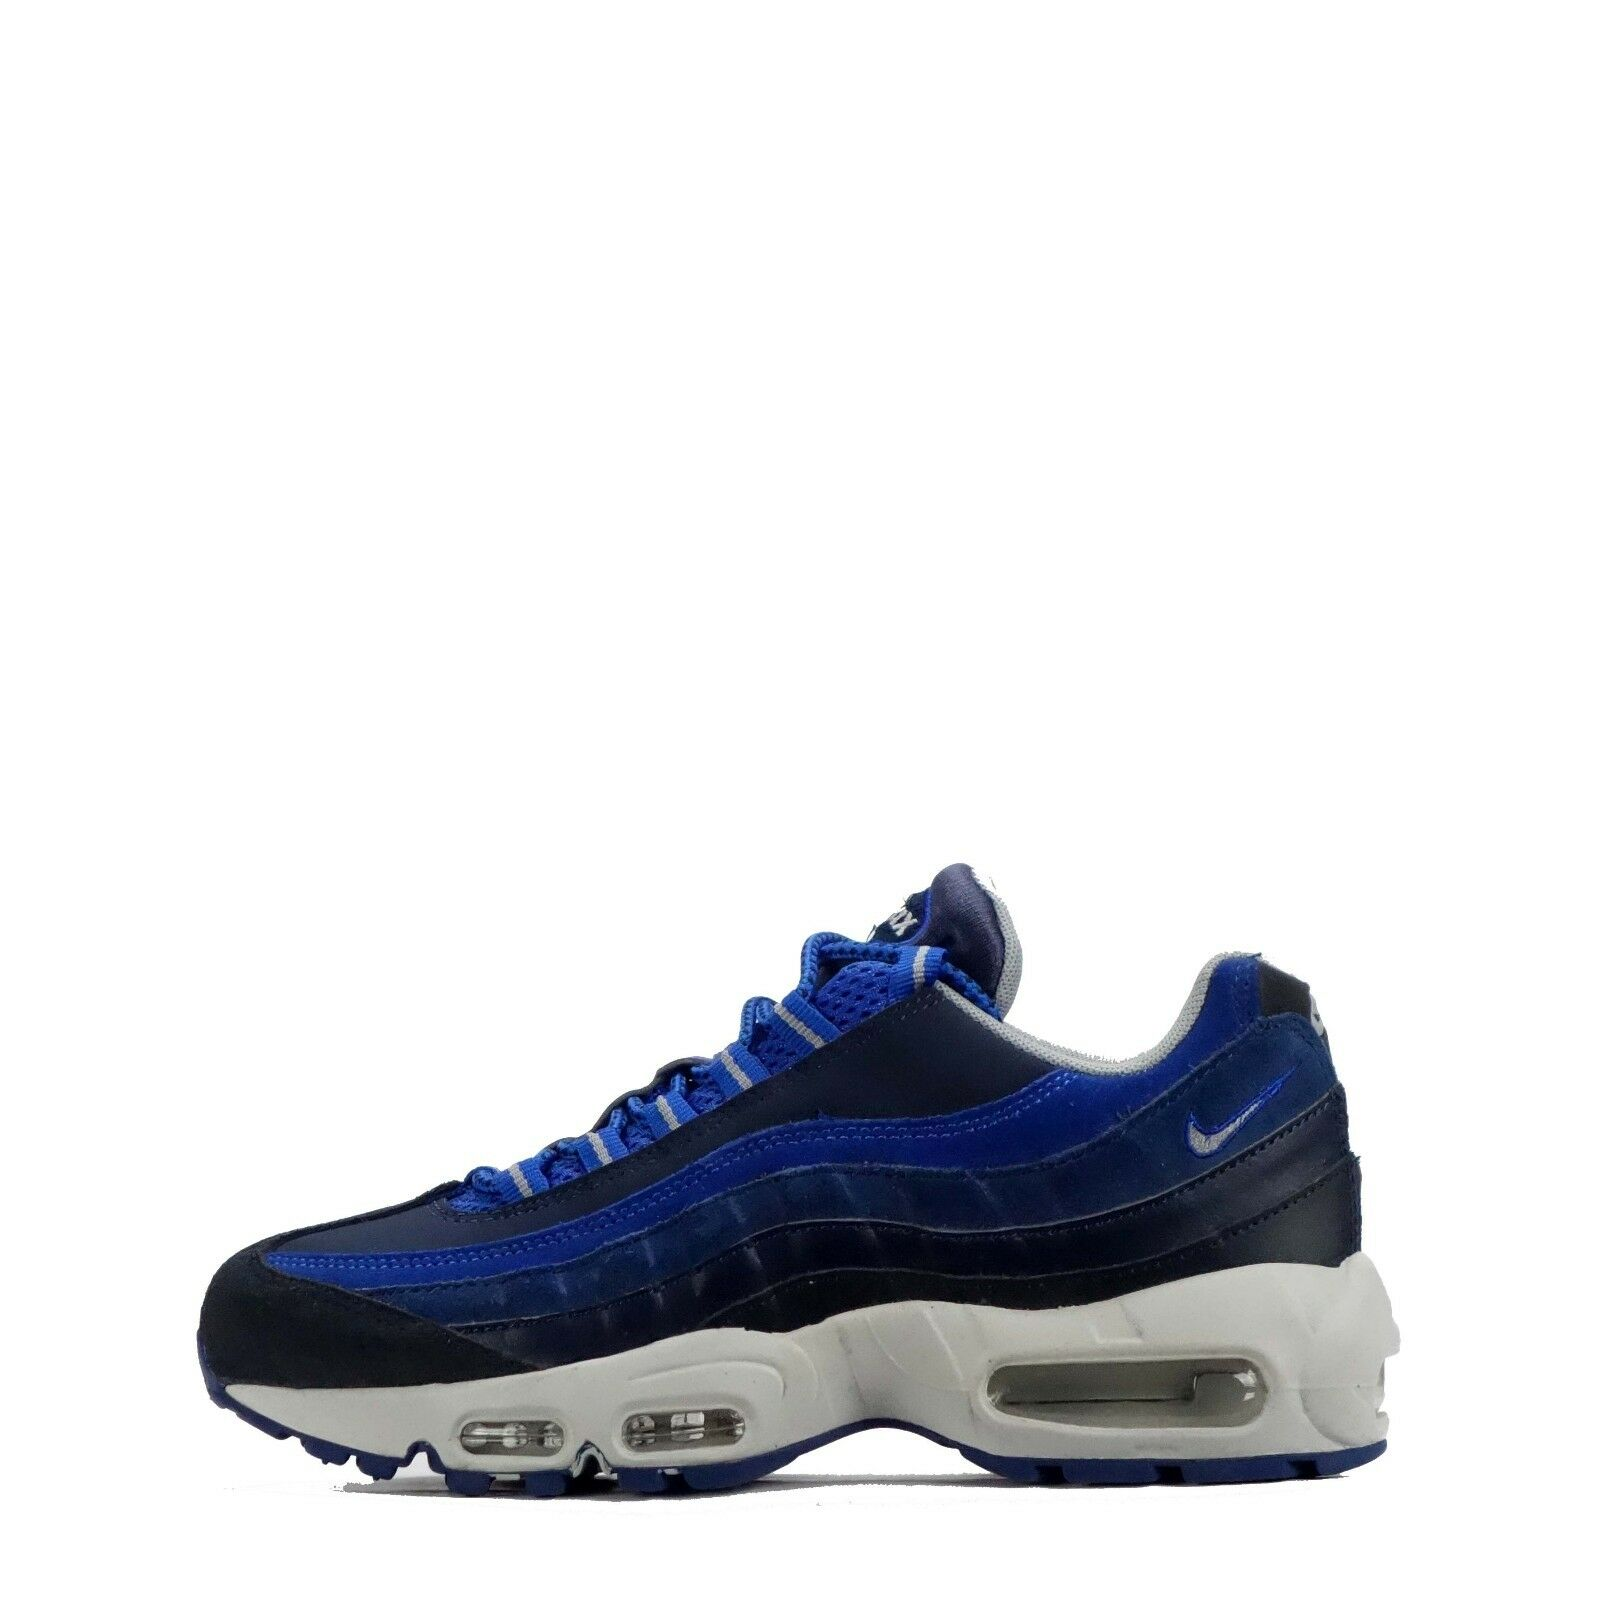 Nike Air Max 95 Essential Men's Shoes in Dark Obsidian/Grey